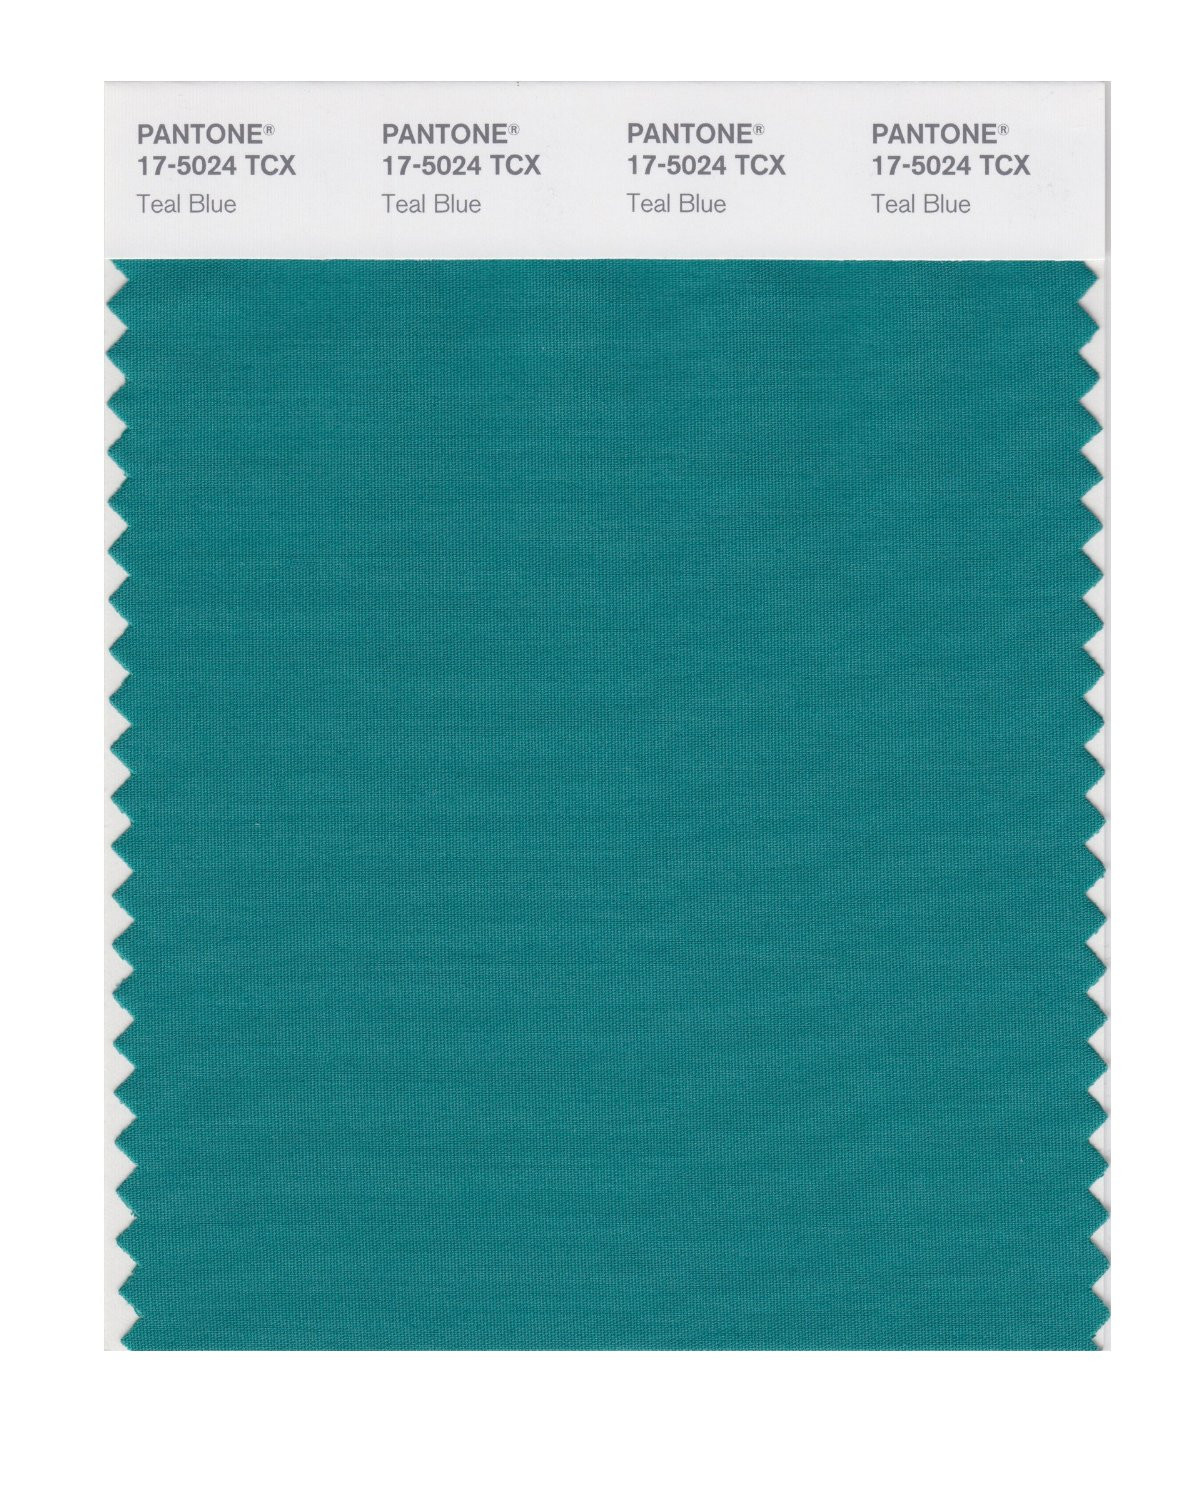 Pantone Smart Swatch 17-5024 Teal Blue